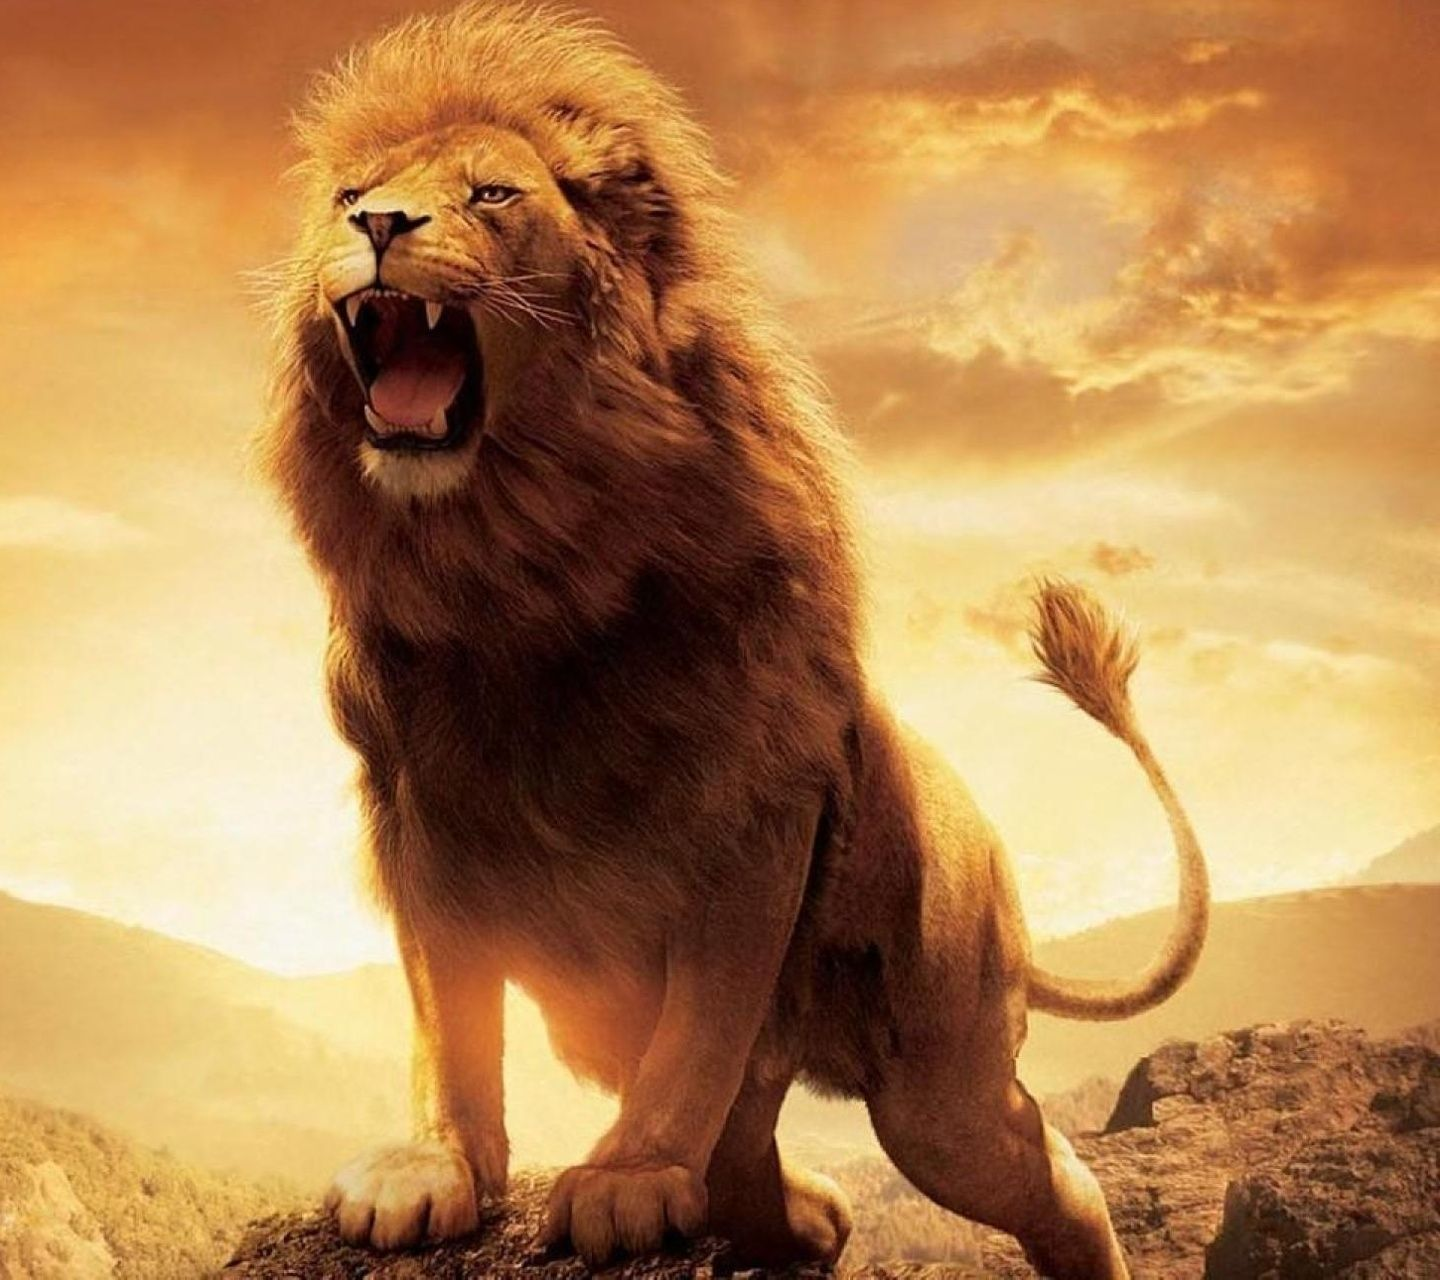 Roaring Lion Wallpapers Top Free Roaring Lion Backgrounds Wallpaperaccess